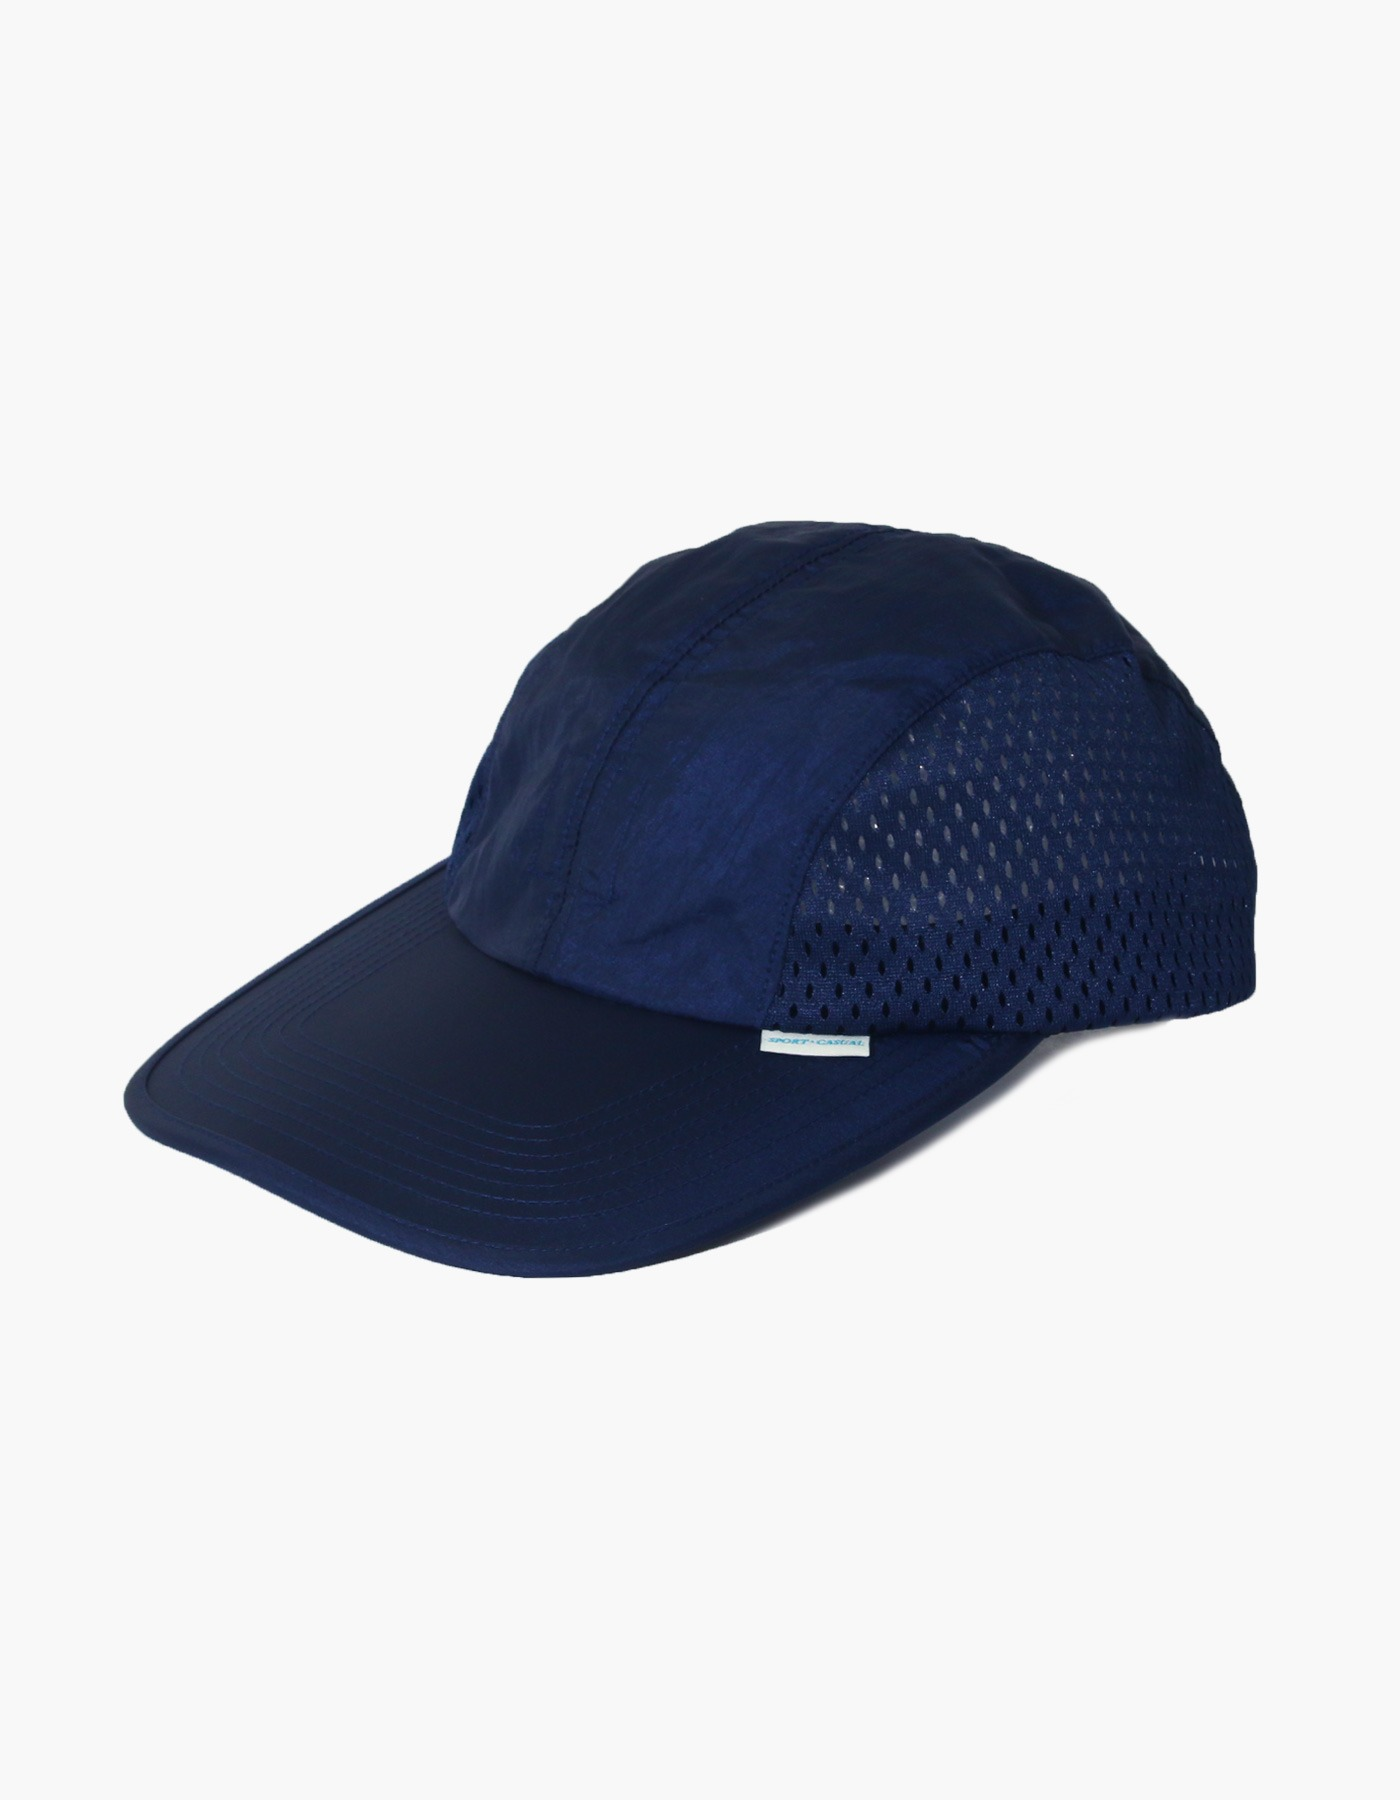 NYLON DIAMOND WASHER MESH CAP / NAVY